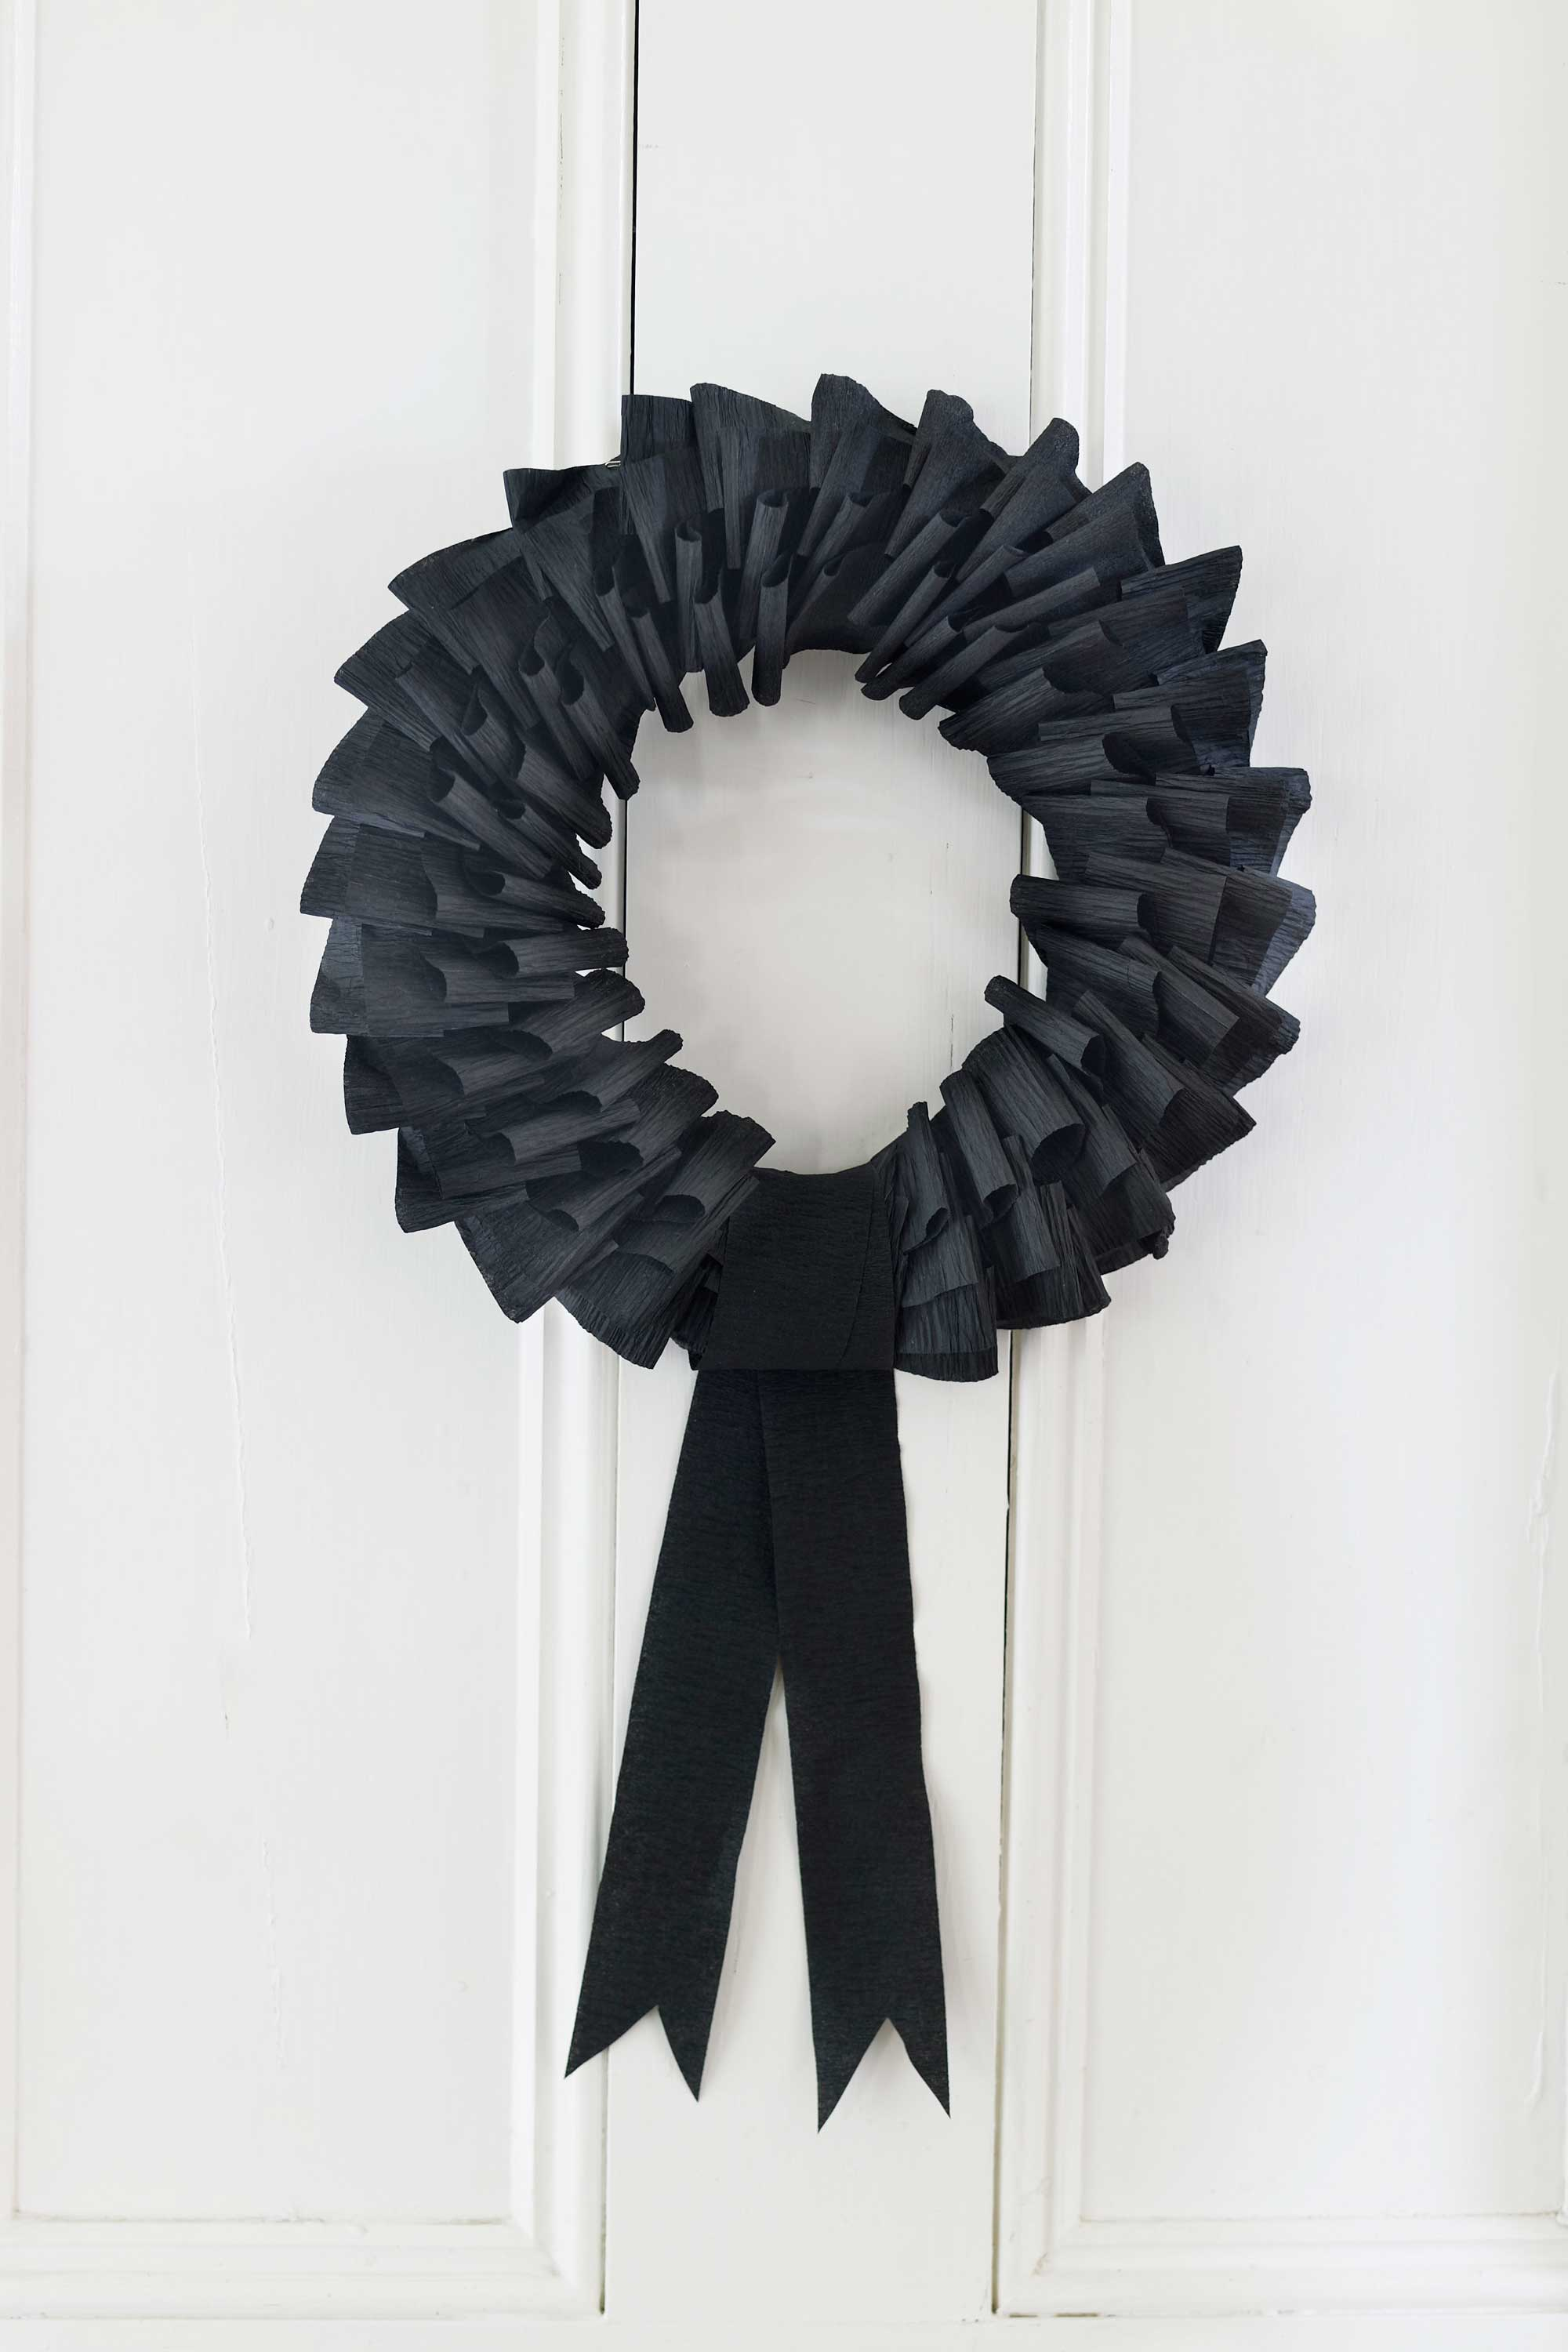 How To Make A Paper Wreath Black Paper Wreath Craft